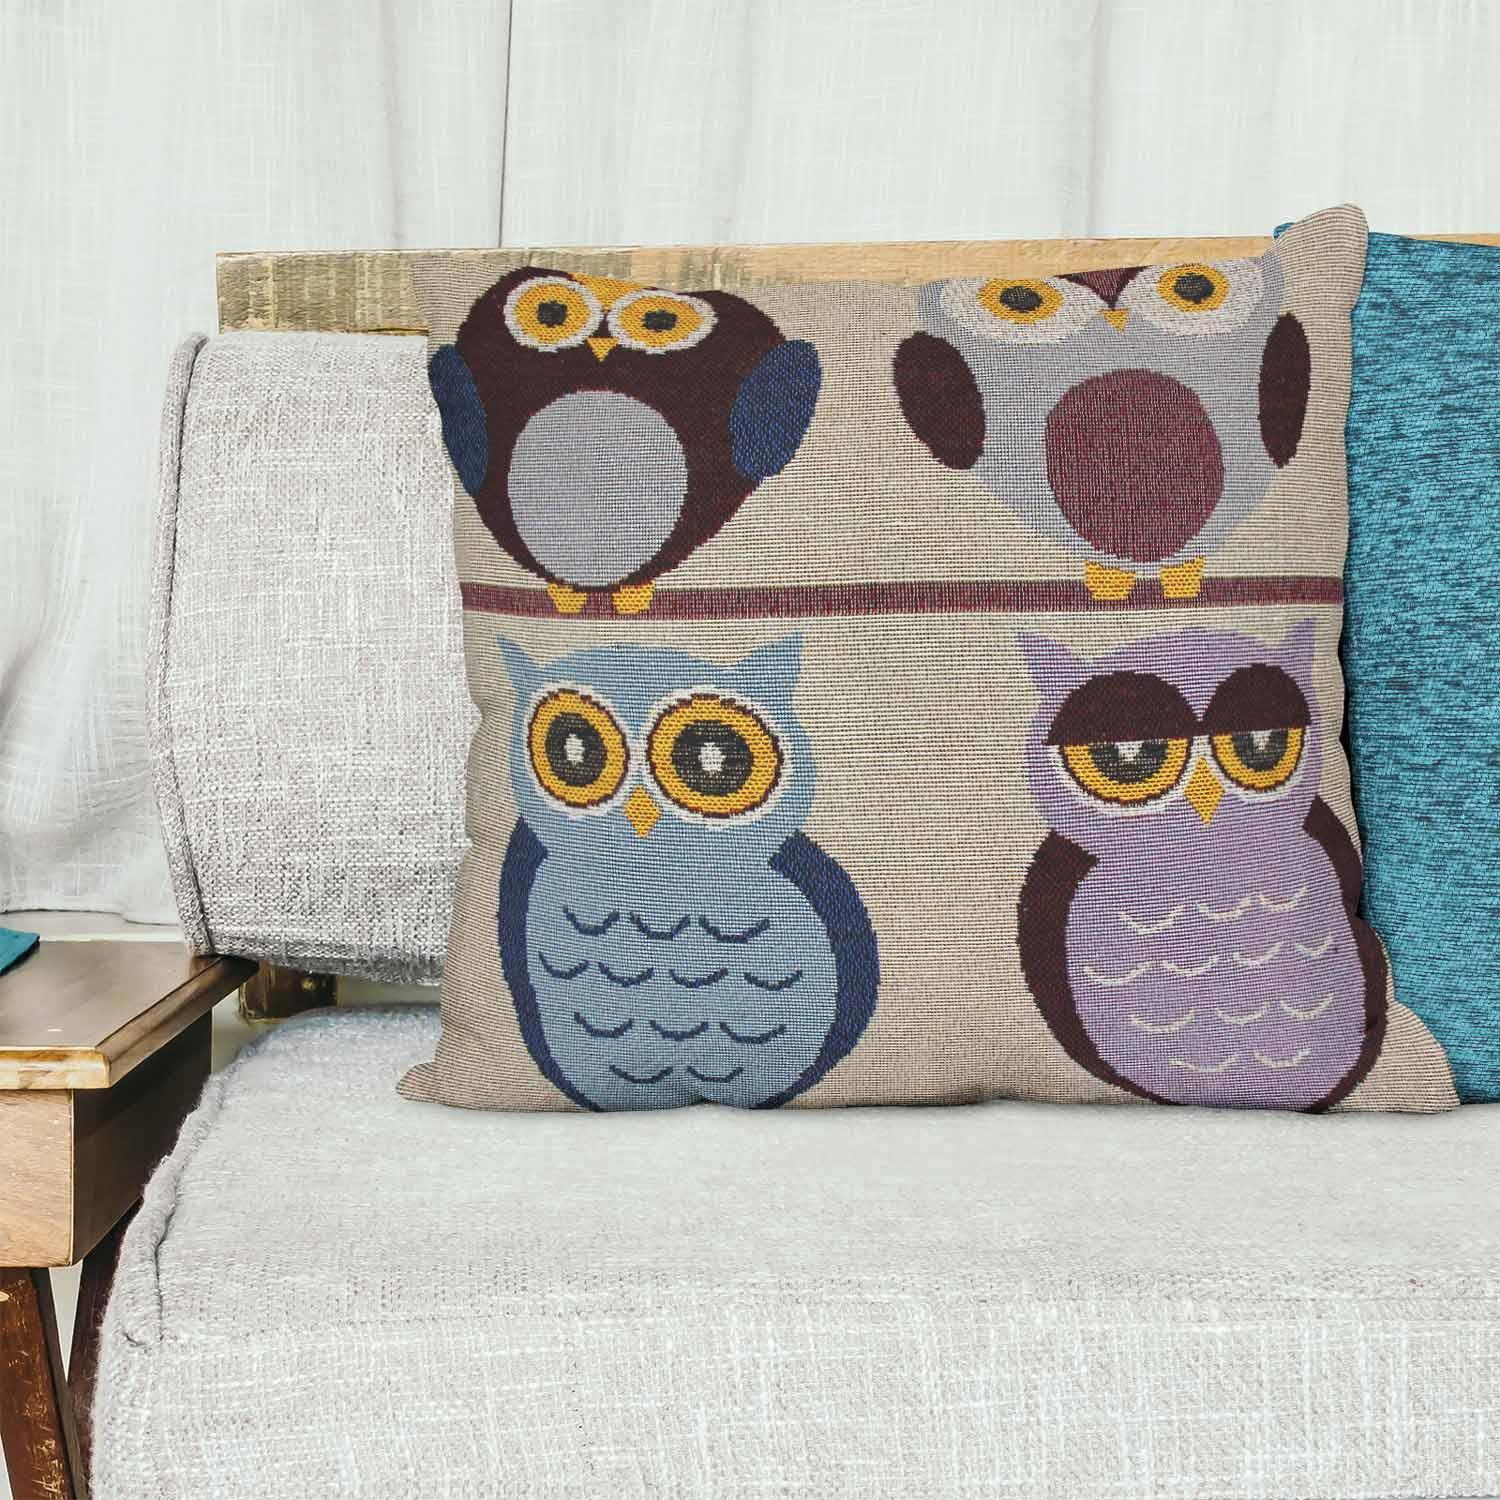 Tapestry-Cushion-Covers-Vintage-Pillow-Cover-Collection-18-034-45cm-Filled-Cushions thumbnail 152